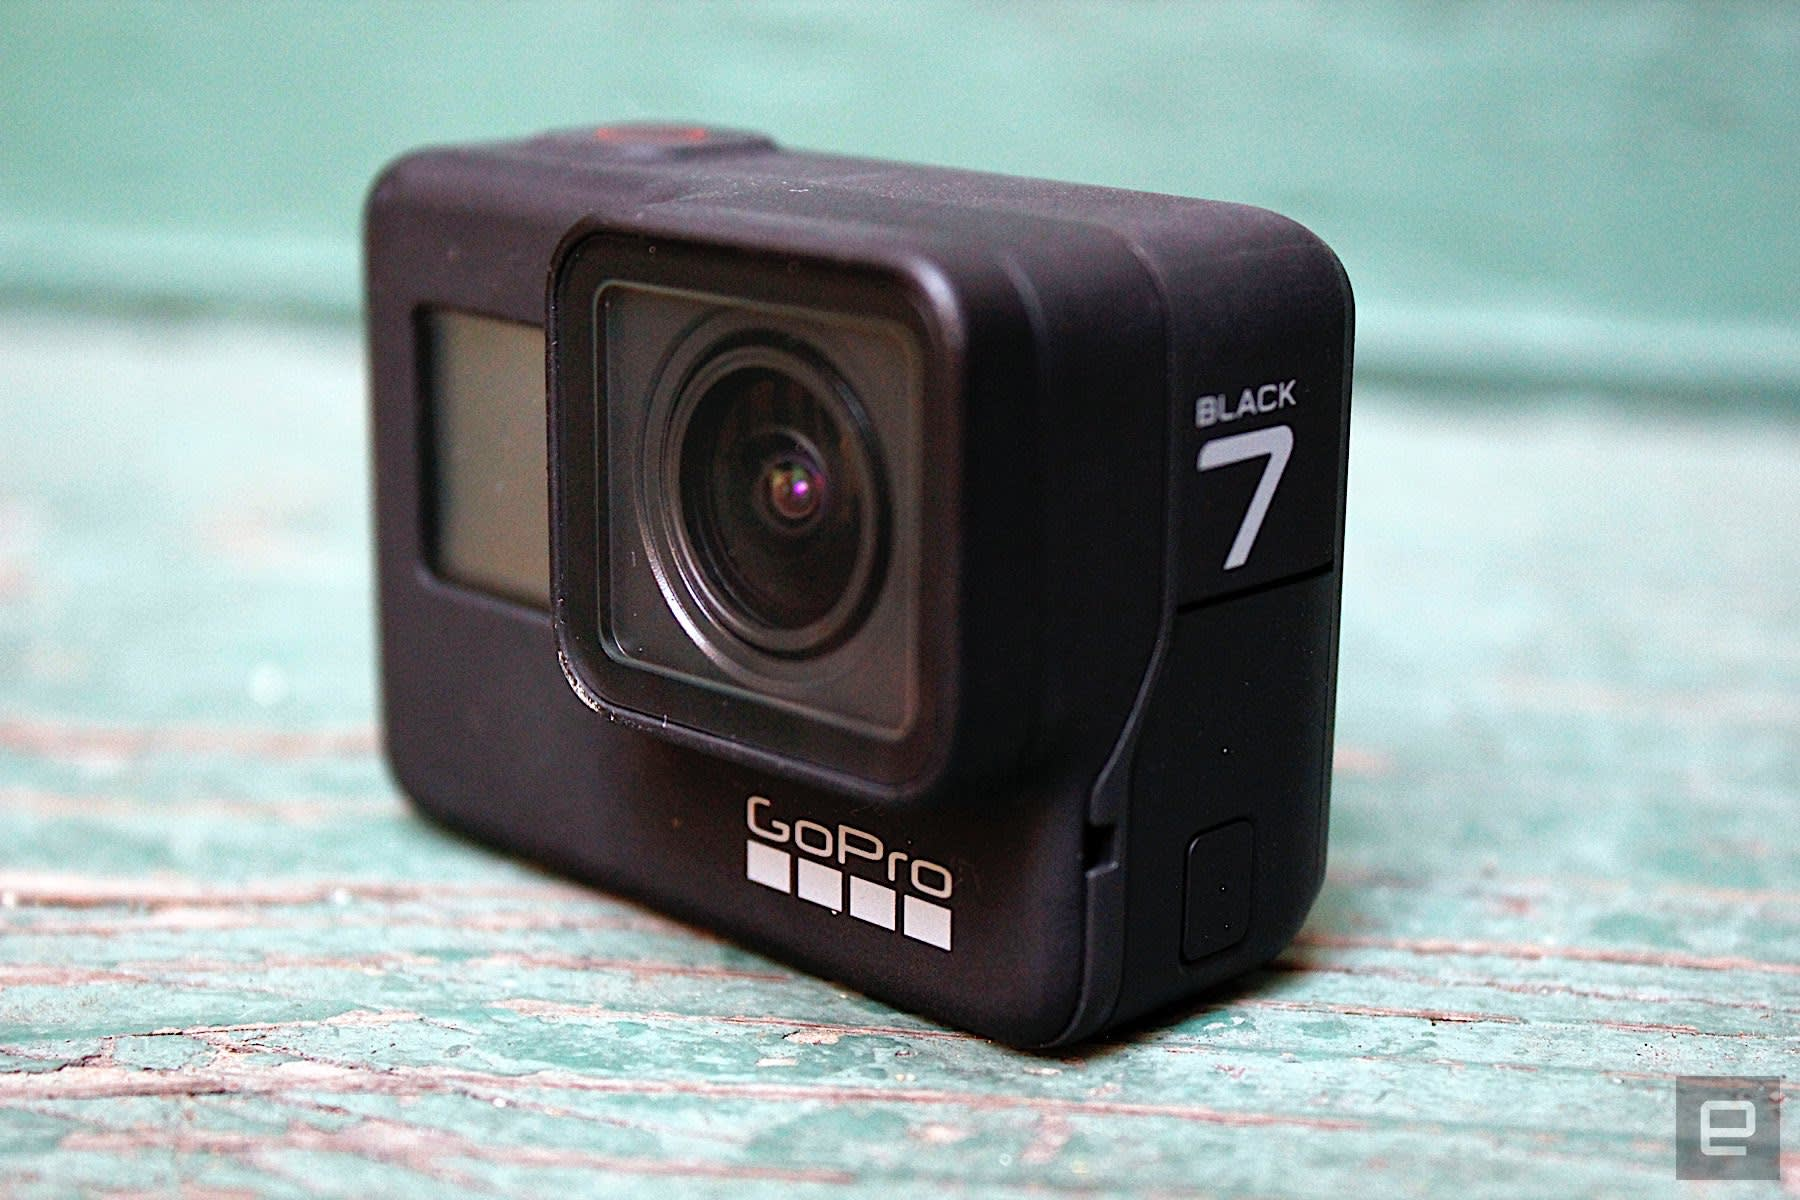 b8a200faba4 GoPro Hero 7 Black review: An action camera for the social age